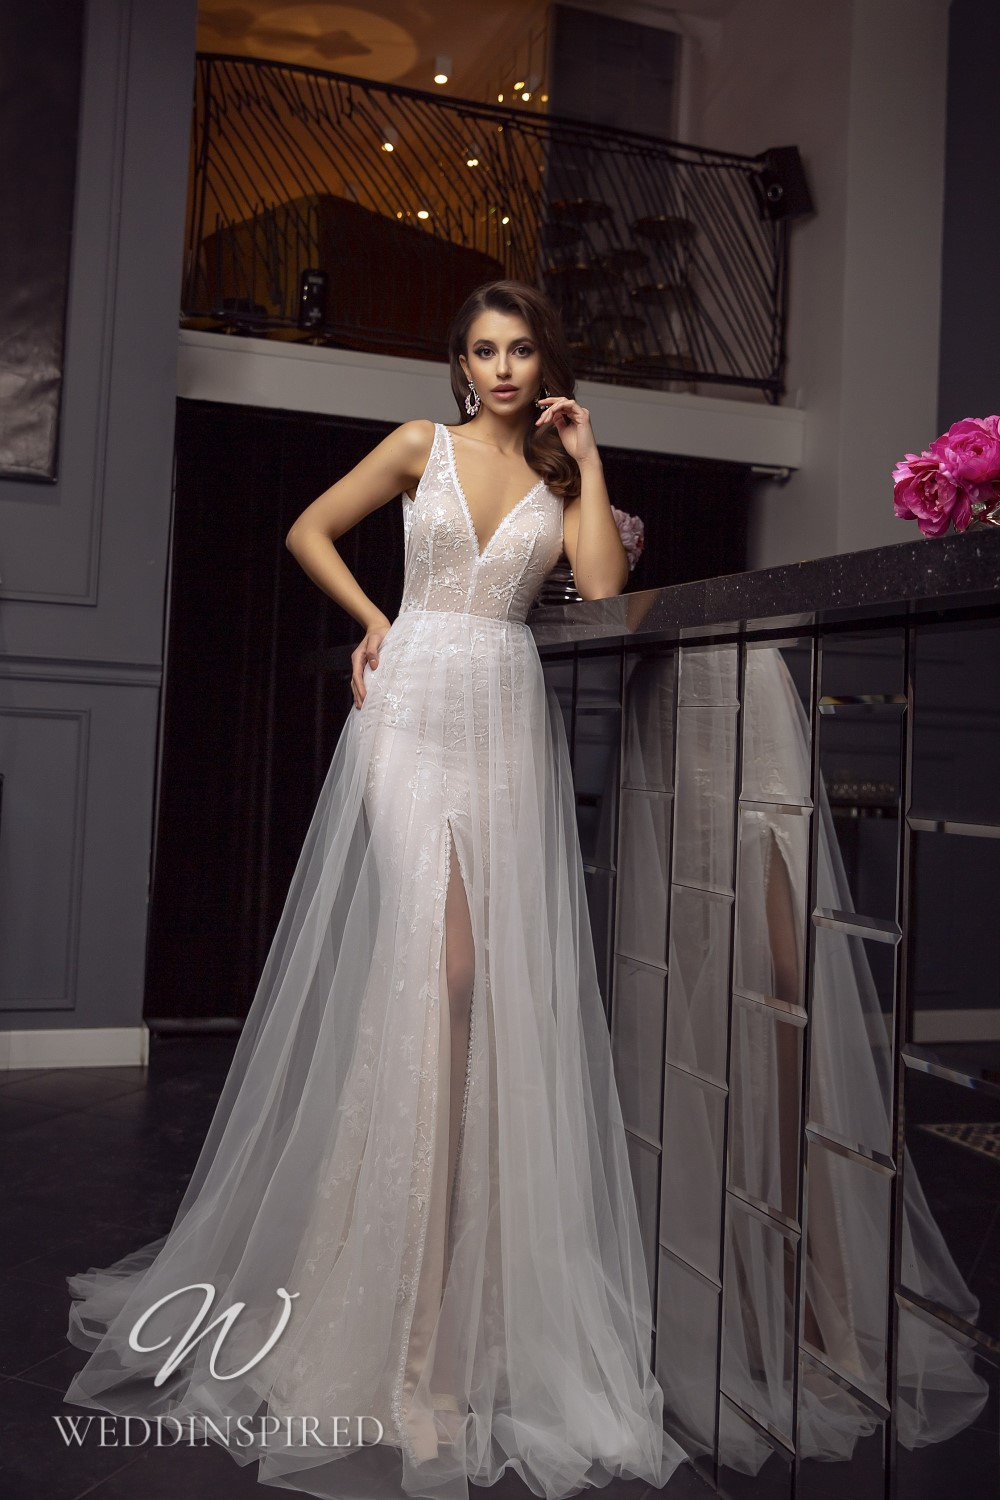 A Tina Valerdi lace and tulle A-line wedding dress